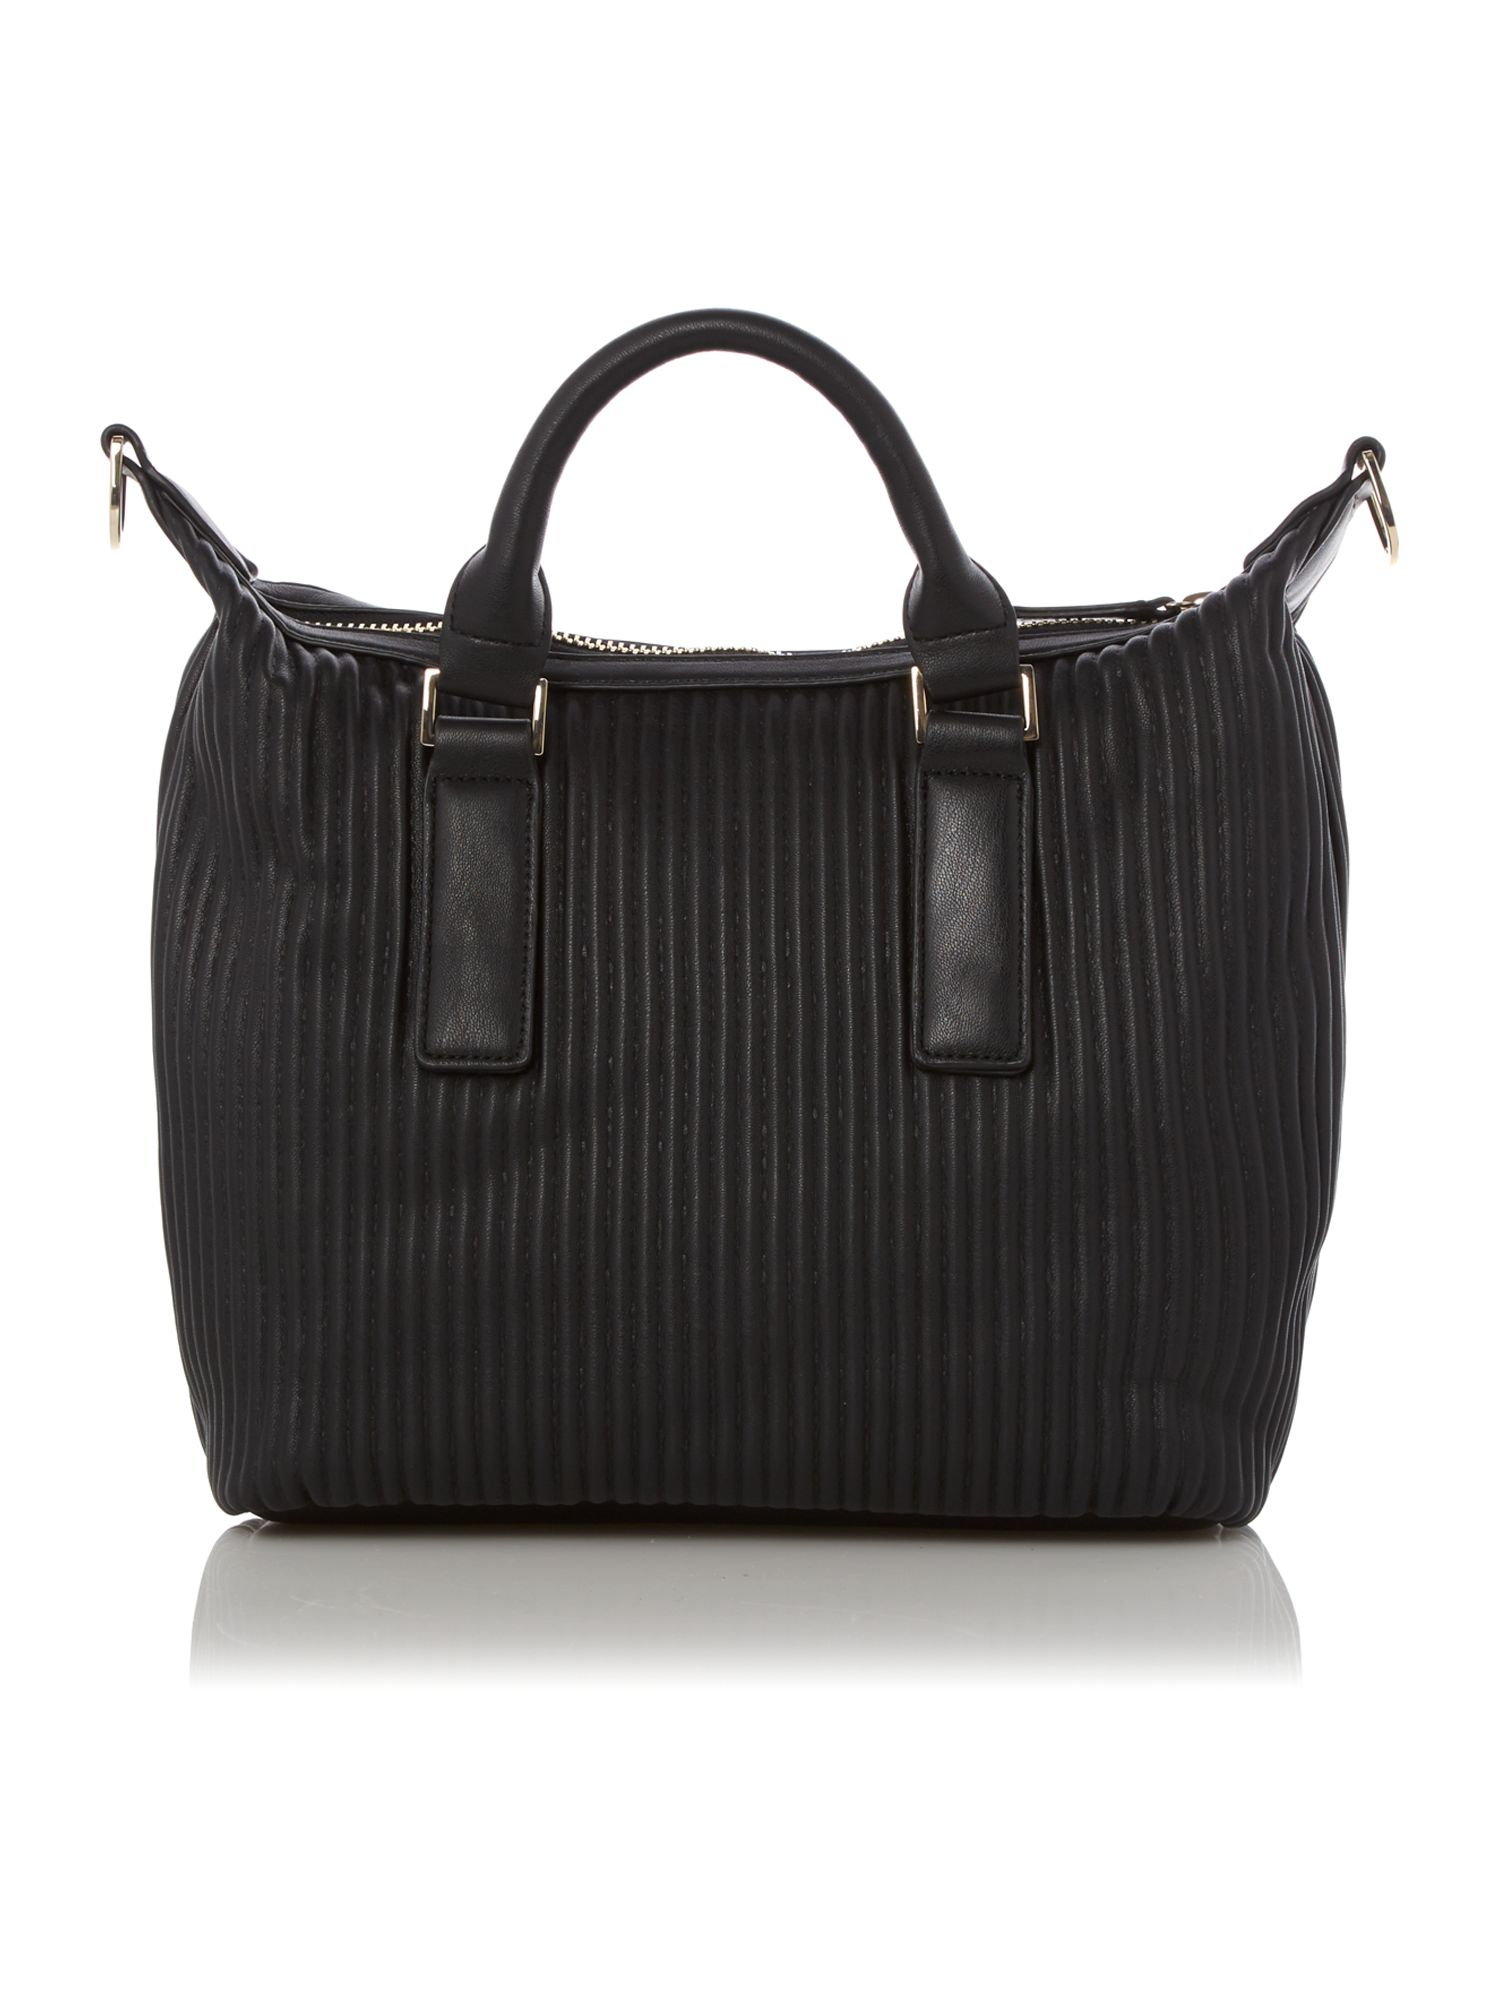 Black segreto tote bag